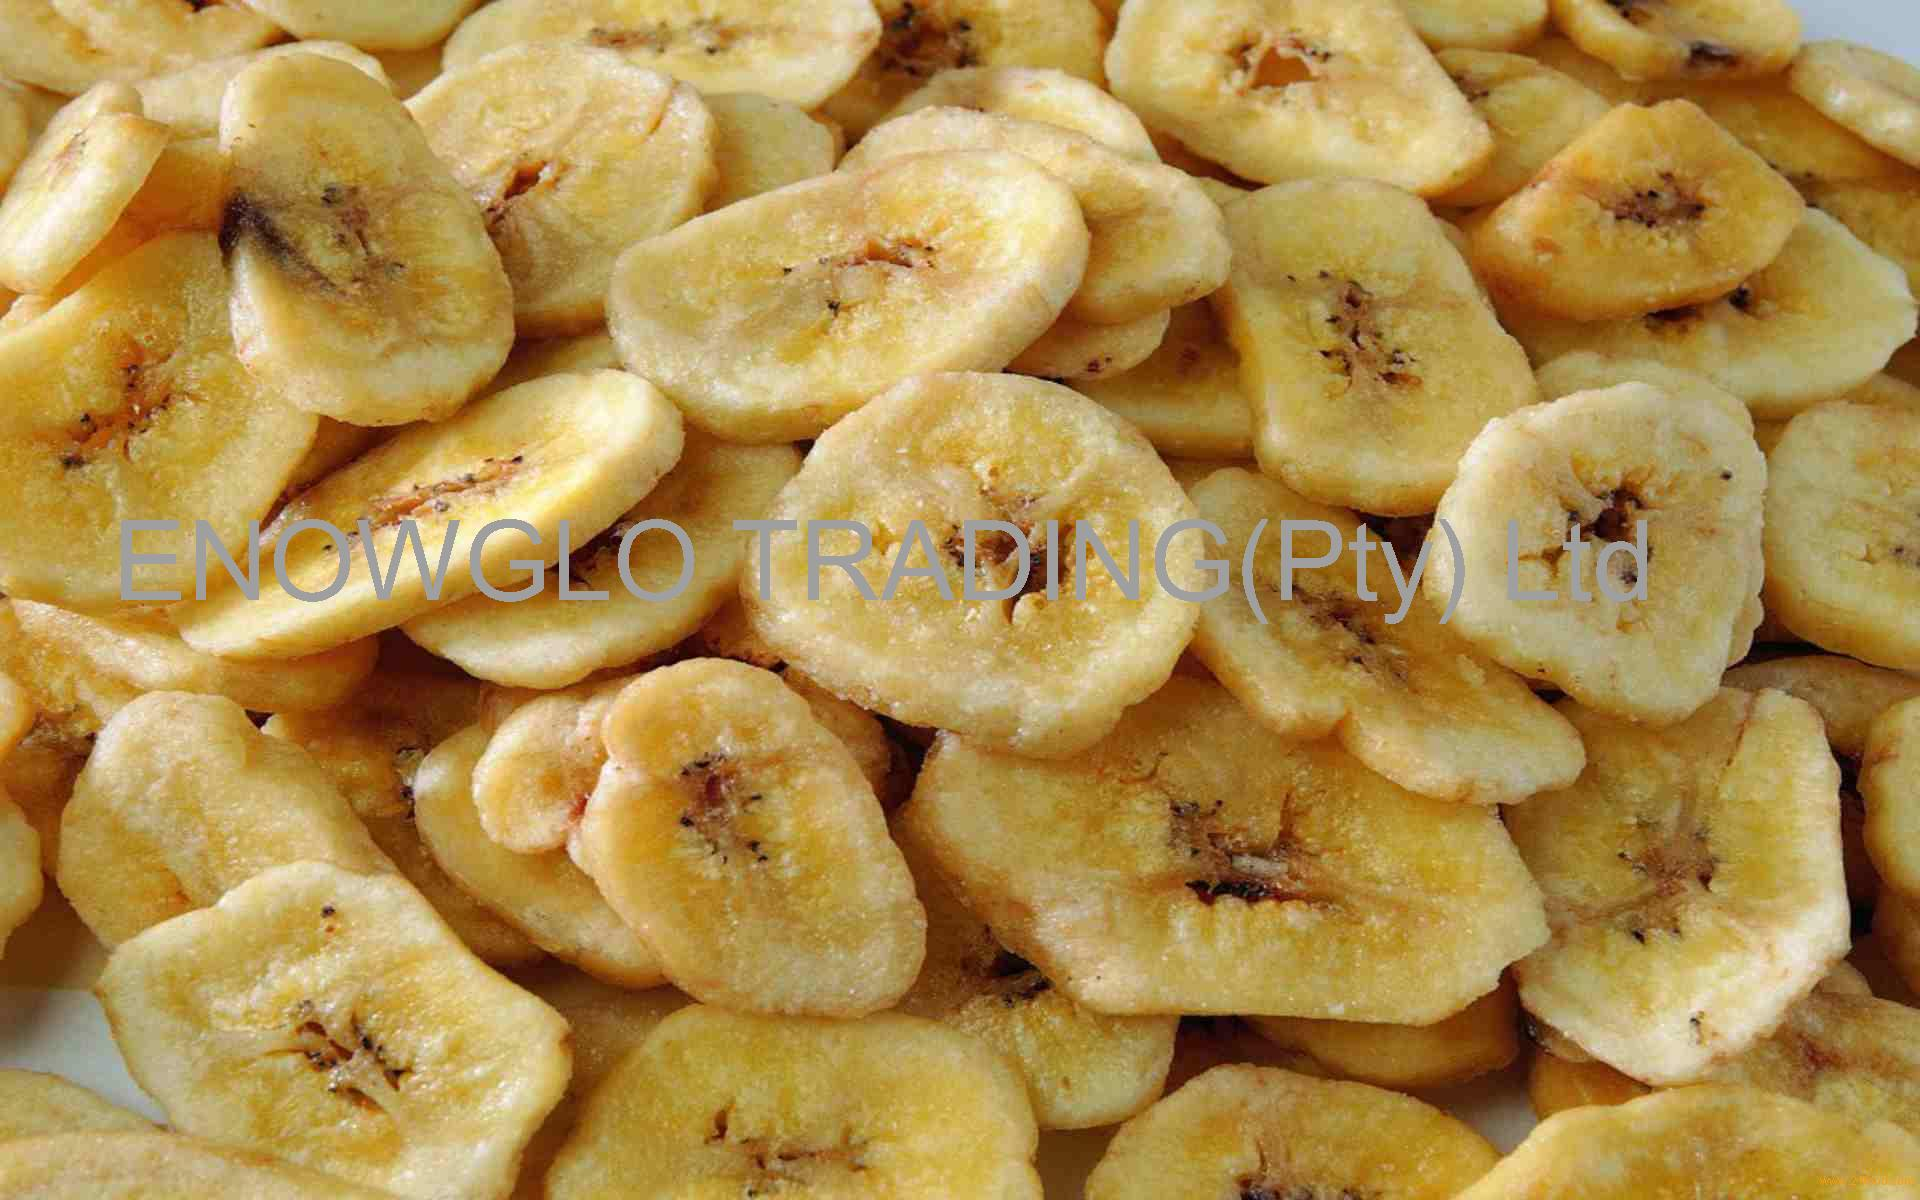 dried banana organic/ banana peel/banana slices